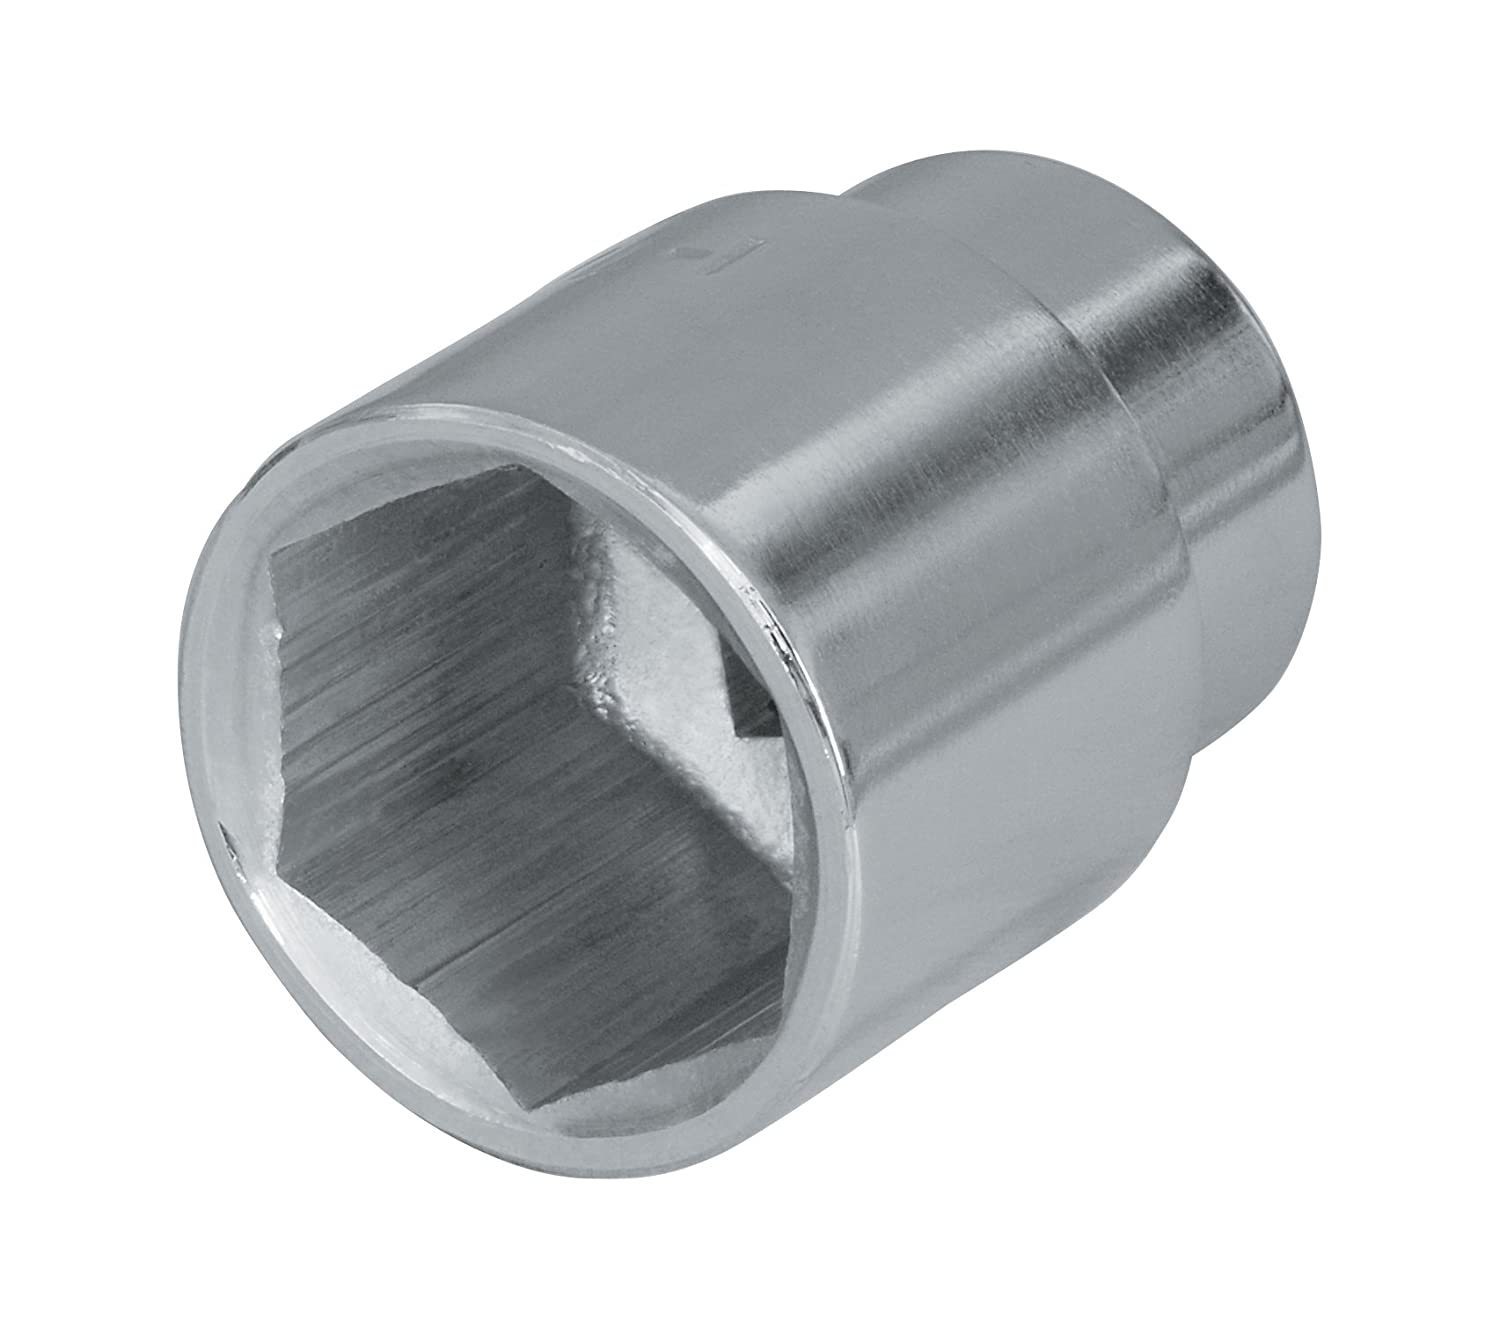 TEKTON 14411 3/4-Inch Drive by 1-7/16-Inch Shallow Socket, 6-Point MIT